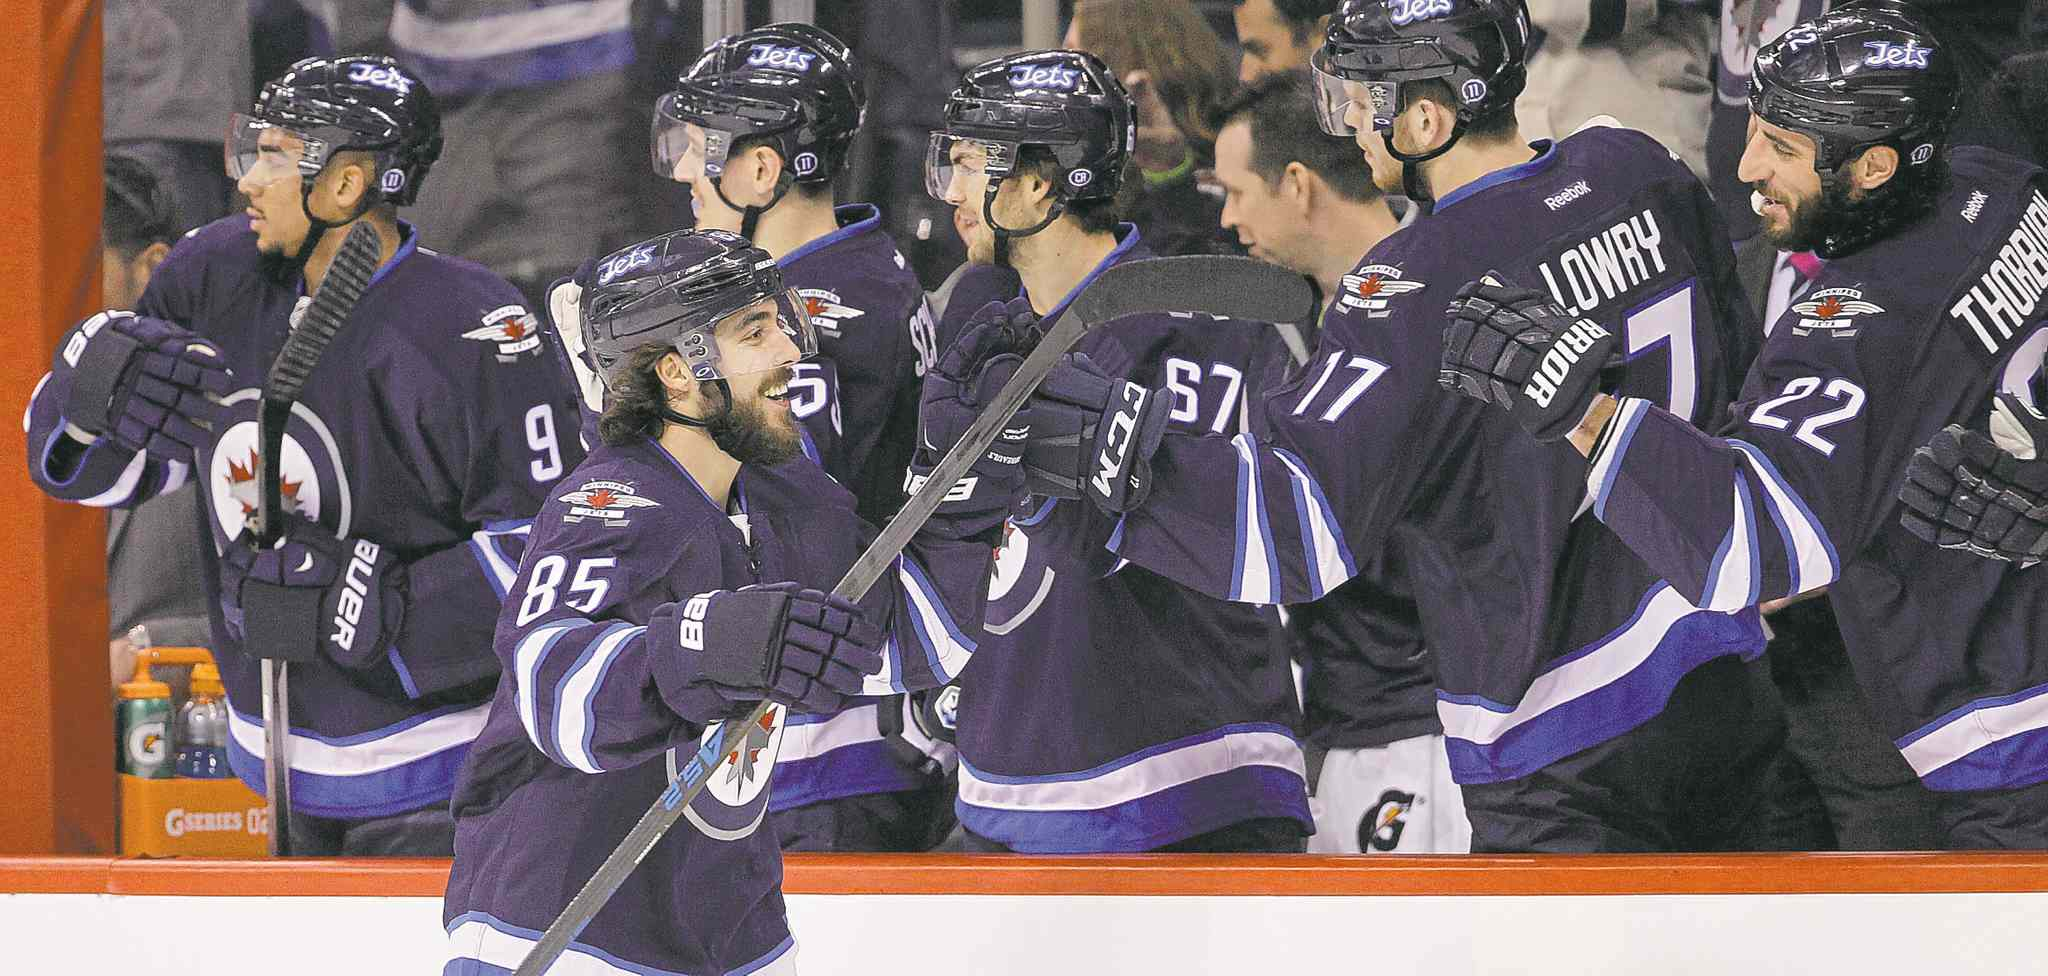 trevor hagan / the canadian press filesWinnipeg Jets forward Mathieu Perreault, seen celebrating his second of four goals against the Florida Panthers Jan. 13, said the Jets are excited to get back at the season and finish what they�ve started.